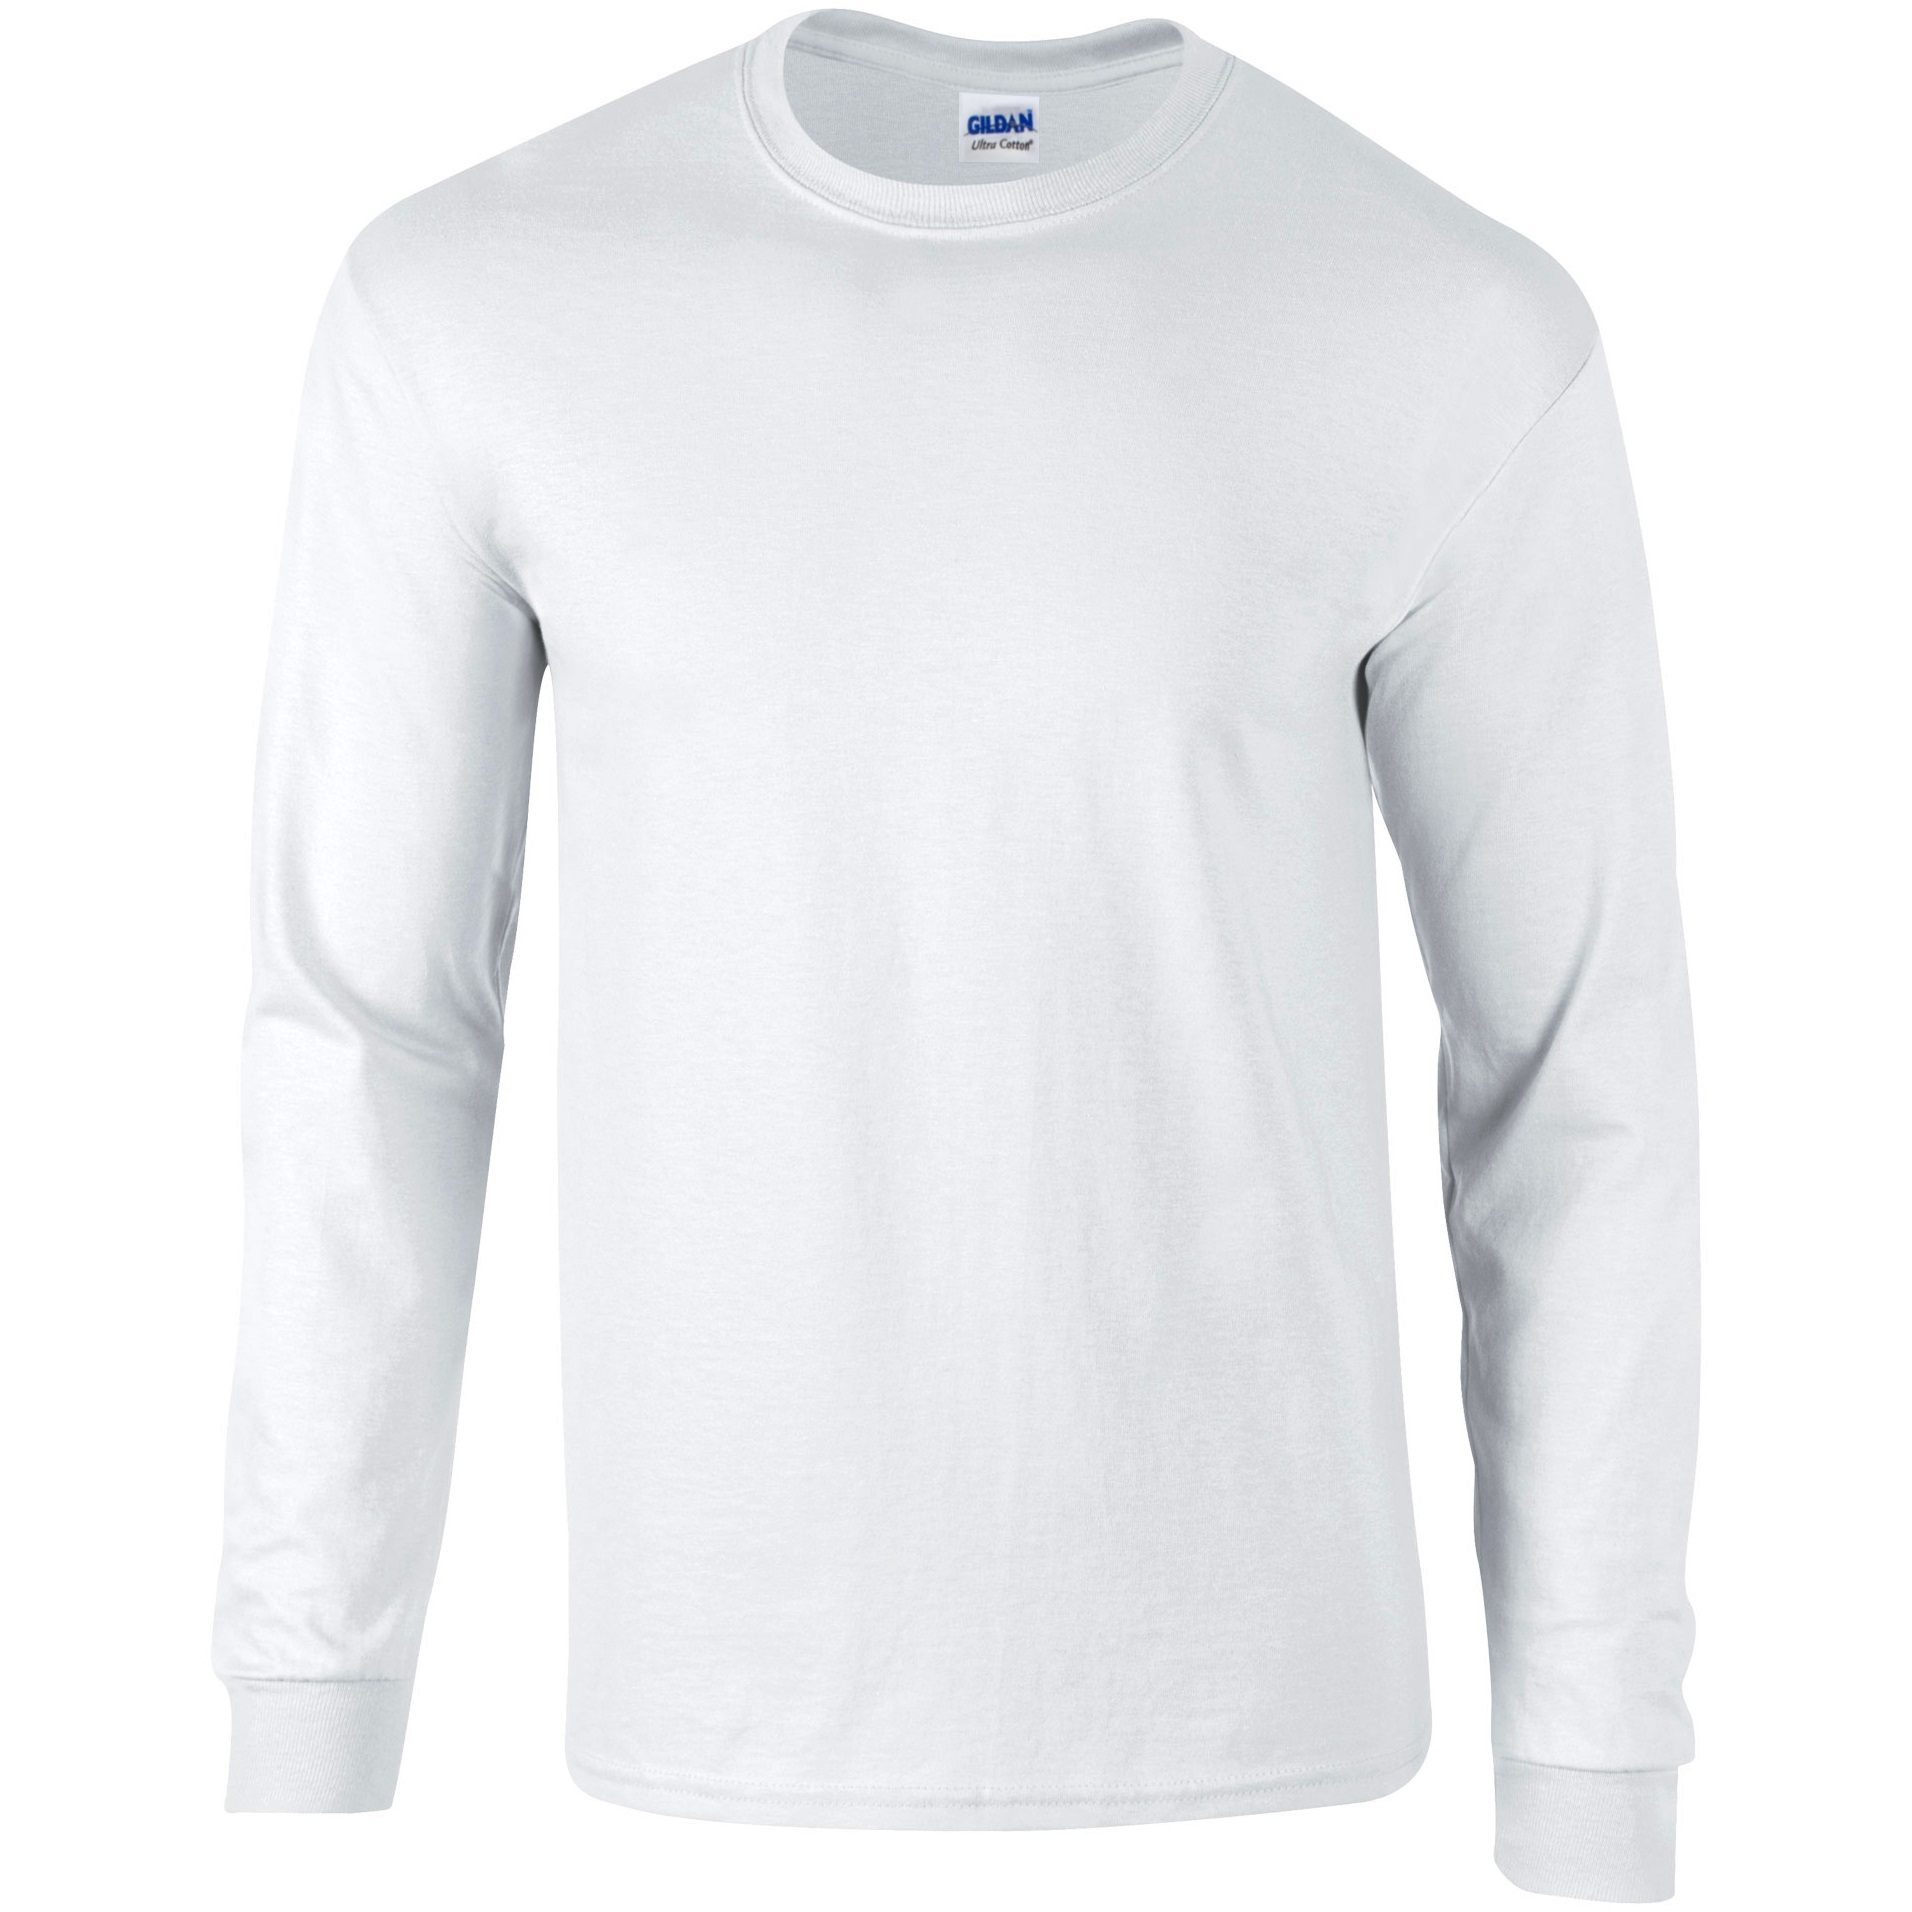 a64cb9218af ... Ultra Cotton™ adult long sleeve t-shirt. Return to Previous Page. prev